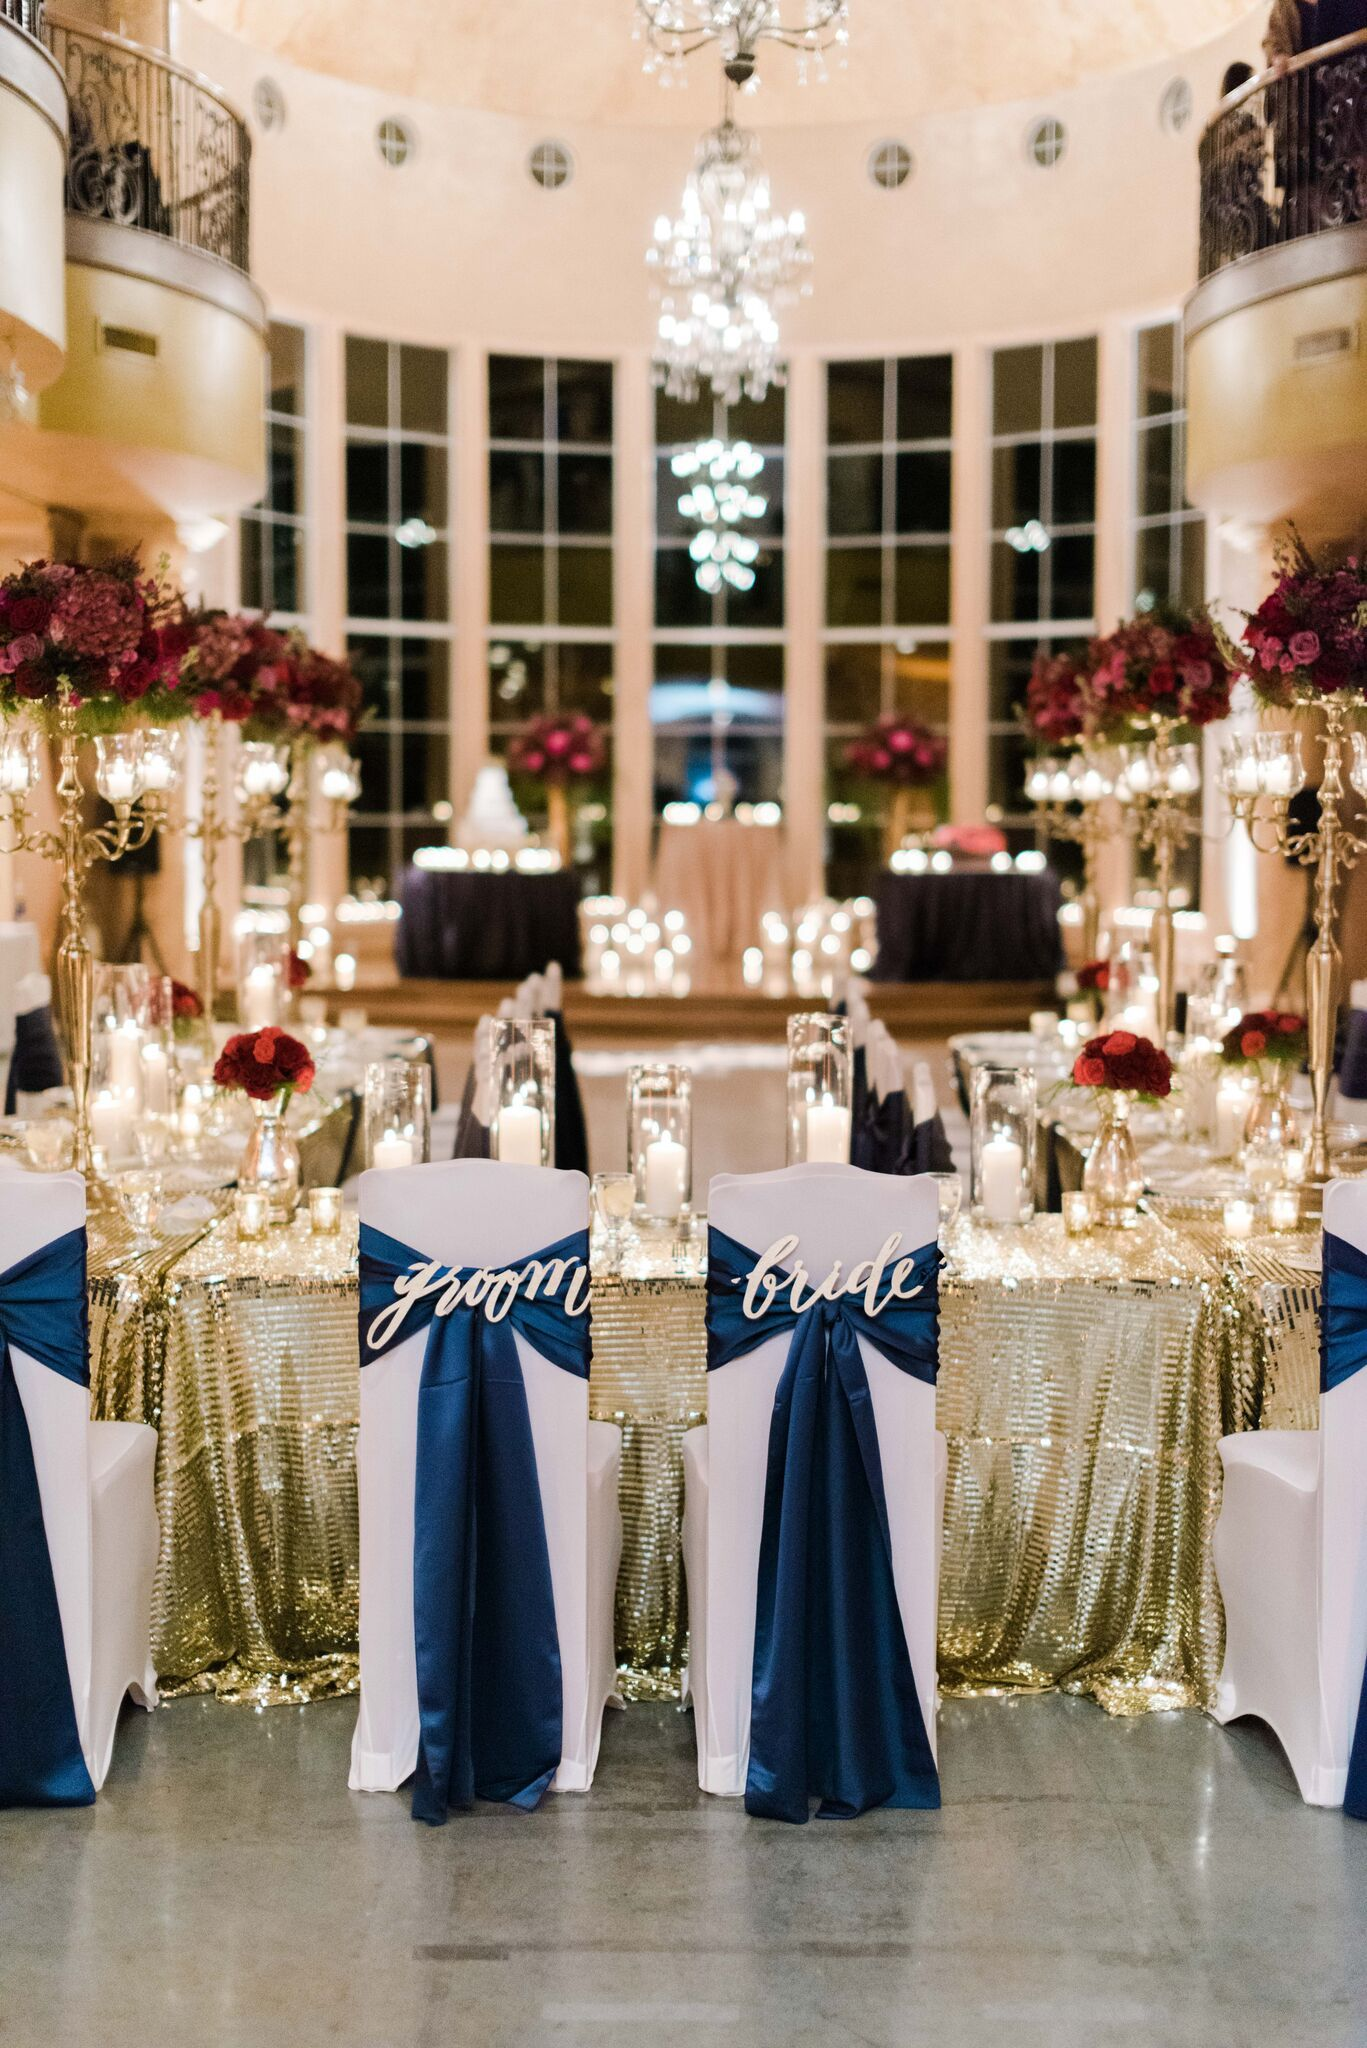 & 10 Best Navy Blue Wedding Decoration Ideas - Wedding Color Schemes